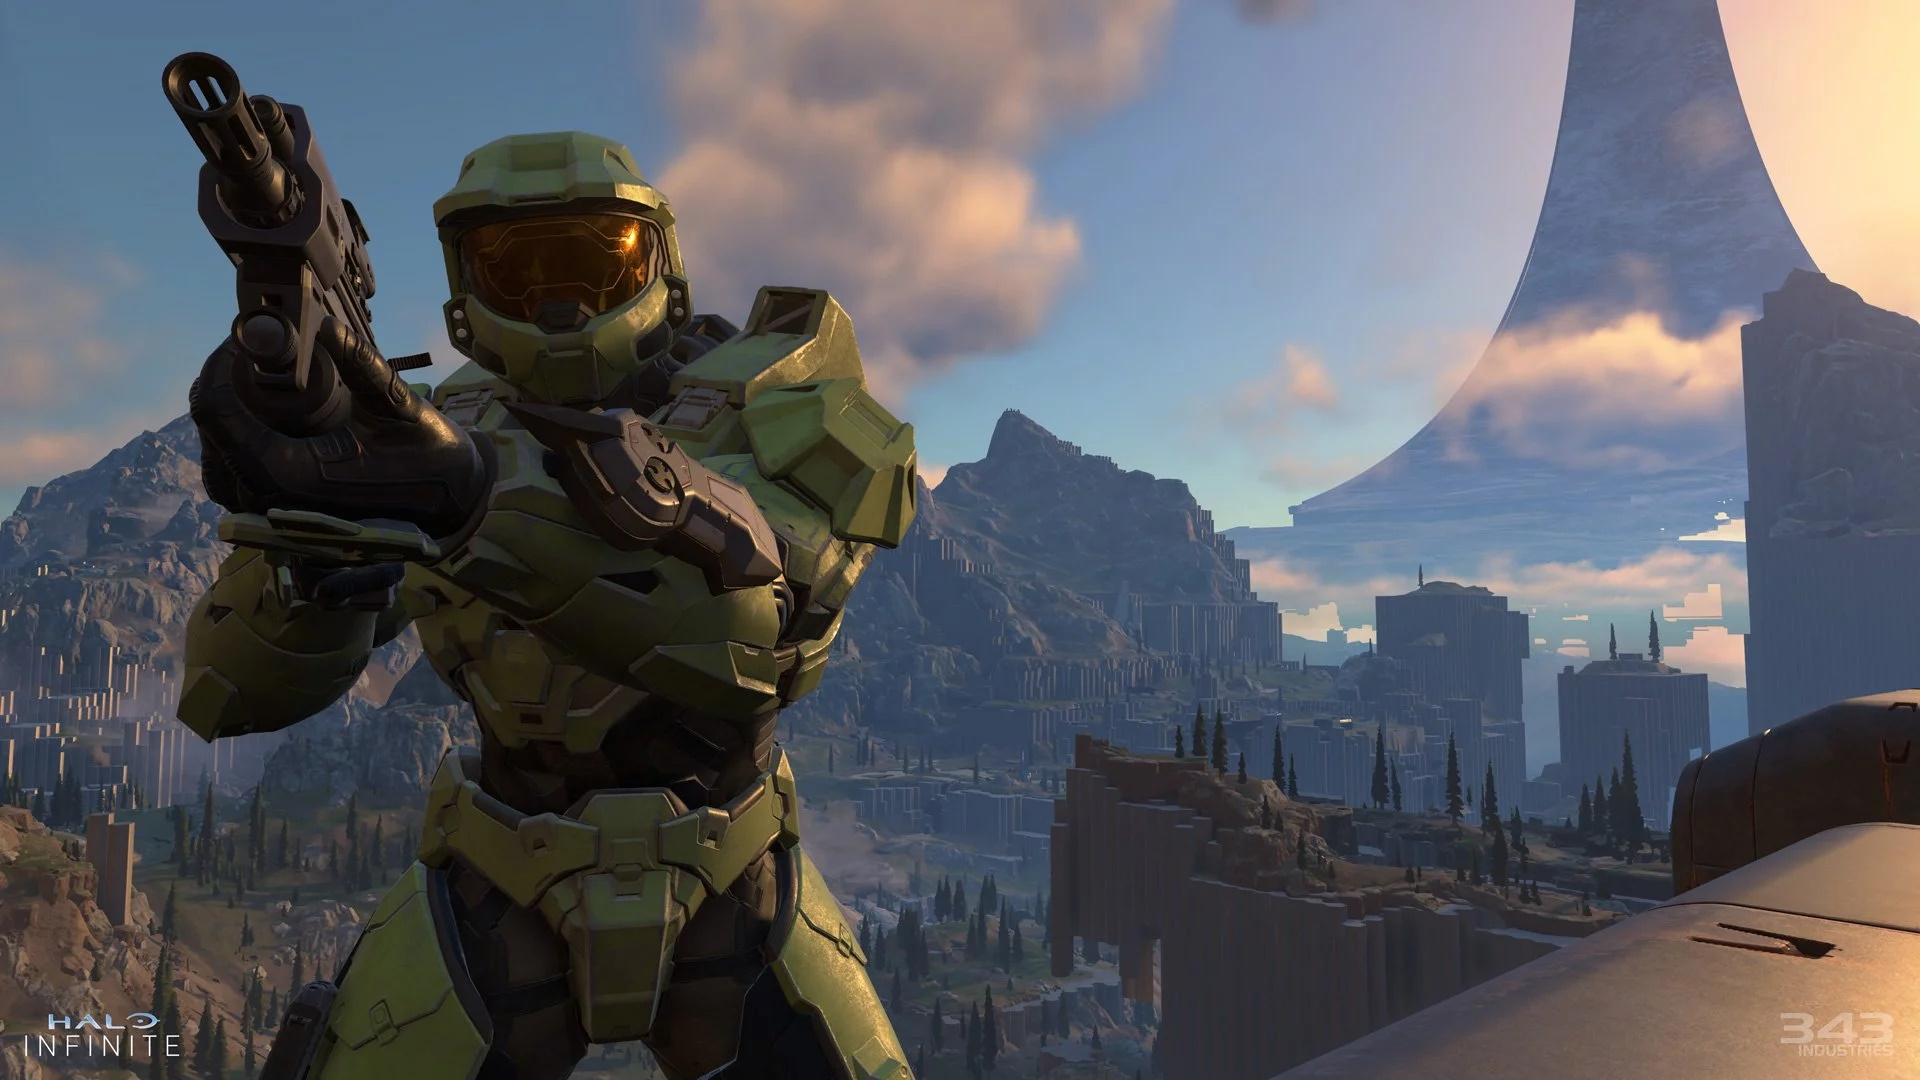 halo-infinite-beta-test-plans-scaled-back-343-confirms.jpg